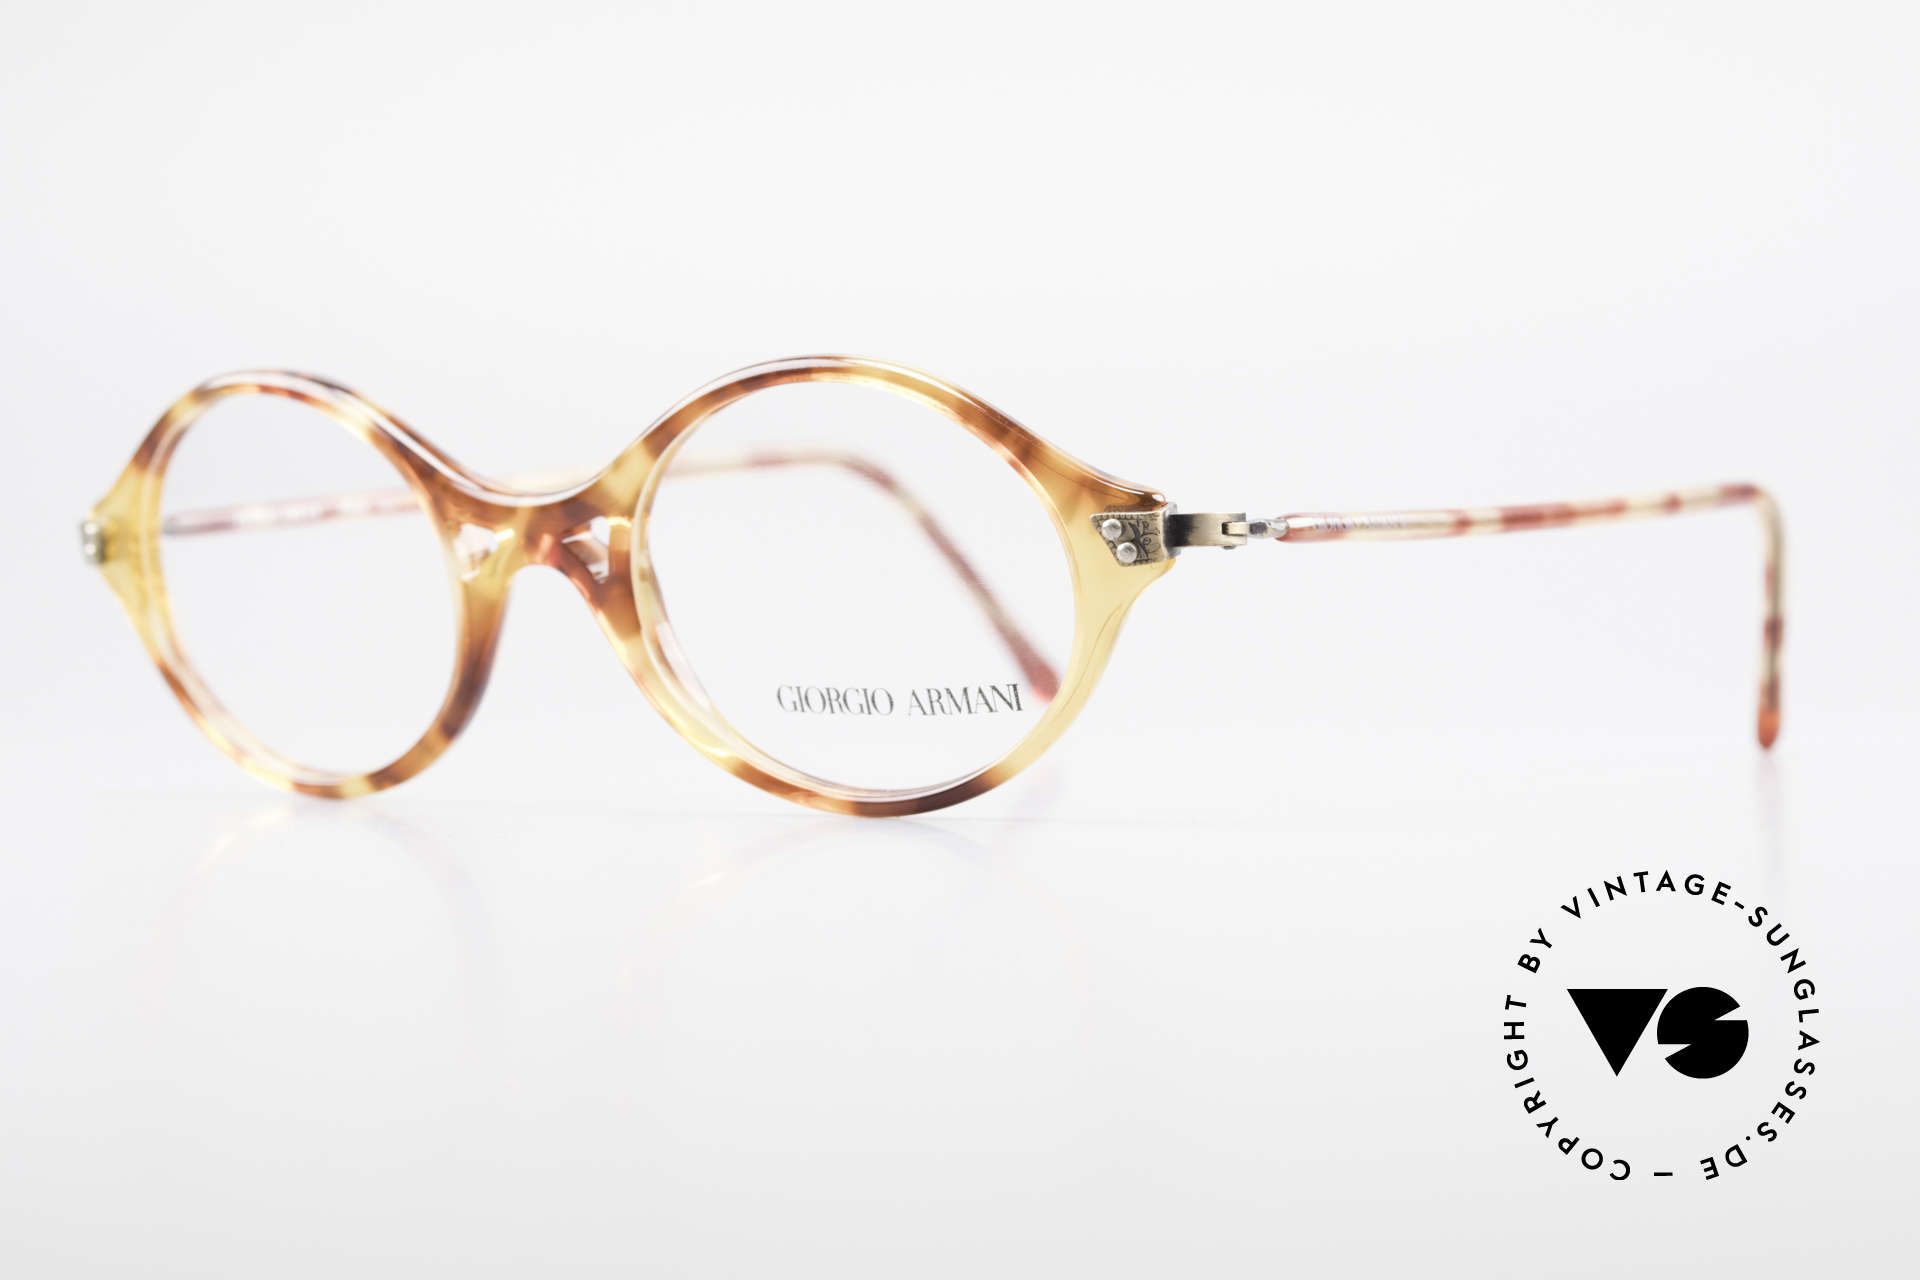 Giorgio Armani 339 Small Oval 90's Eyeglasses, tortoise frame with a striking bridge in TOP-quality, Made for Men and Women